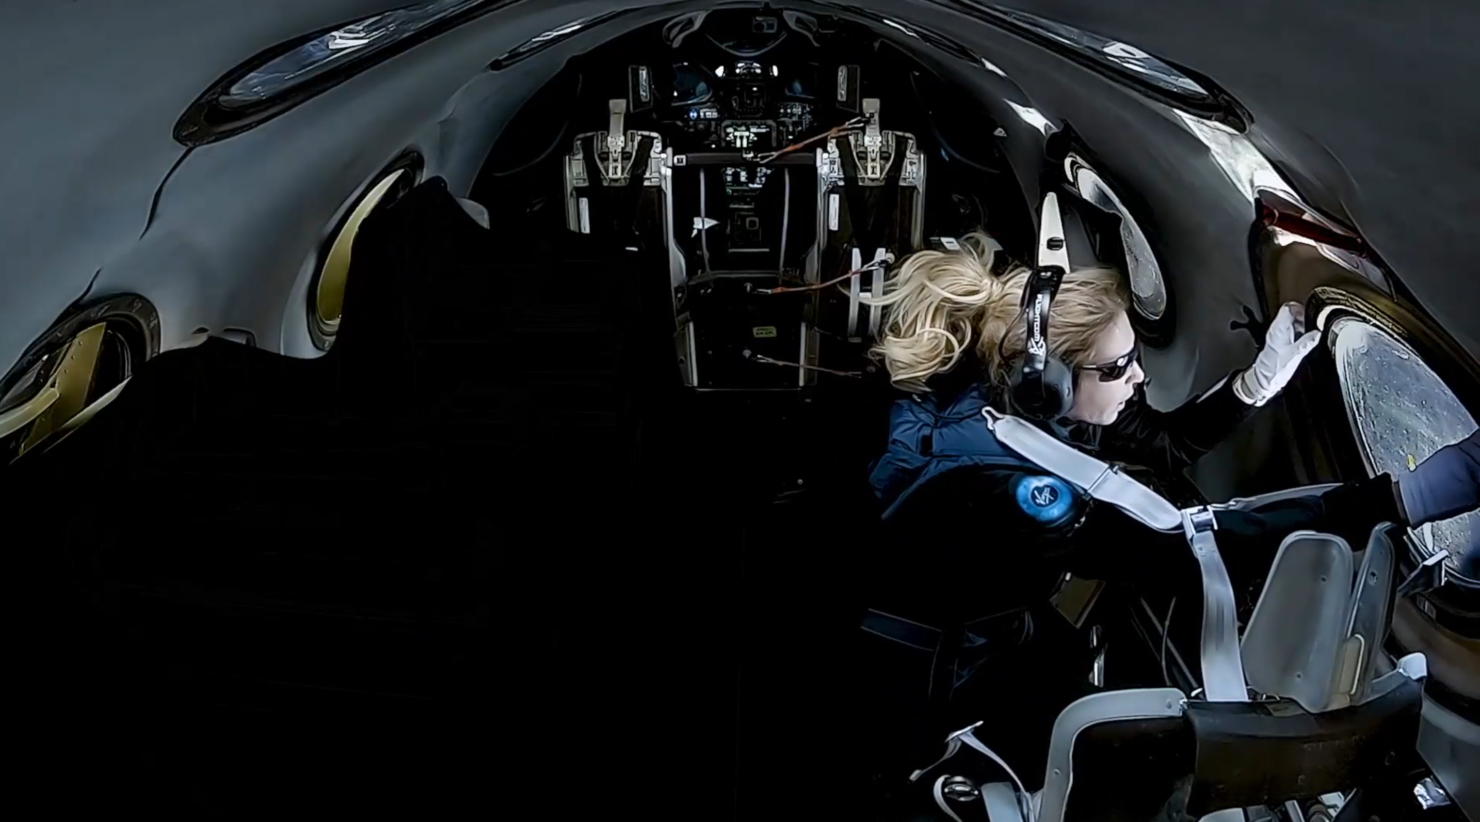 spaceshiptwo-beth-cabin-view-outside